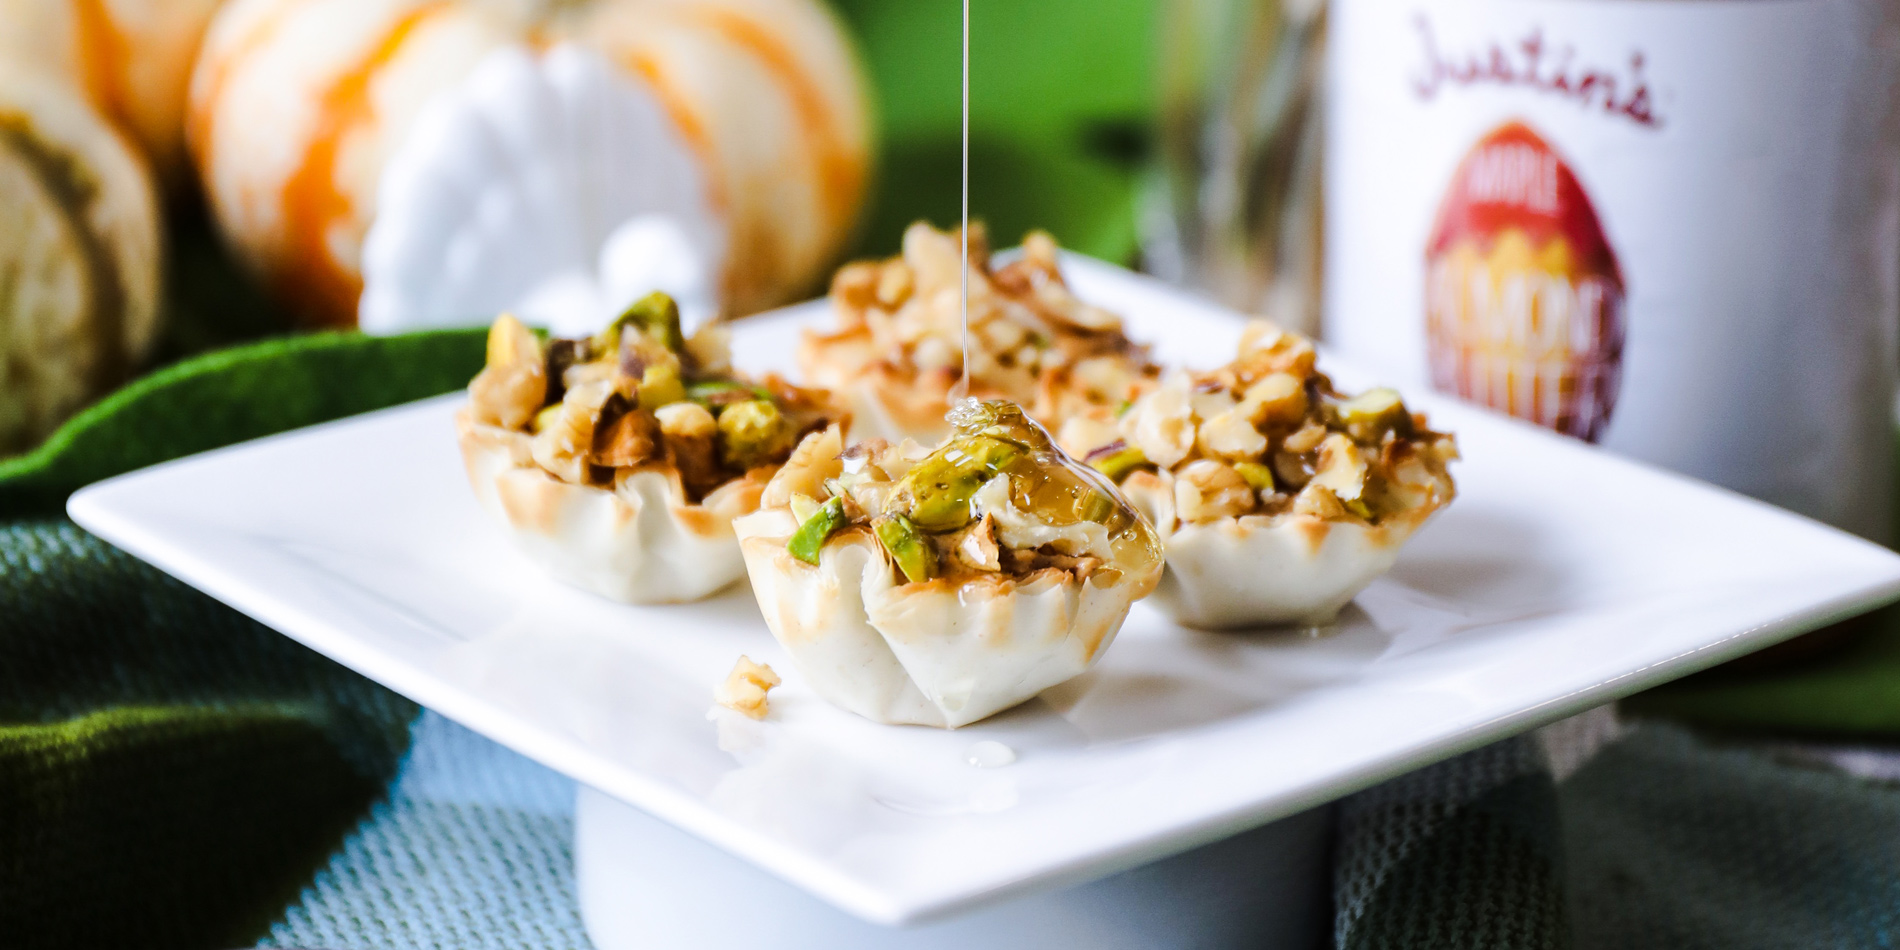 Almond Butter Baklava Bites with honey dripping from top and placed on a white plate and fall decorations in the background